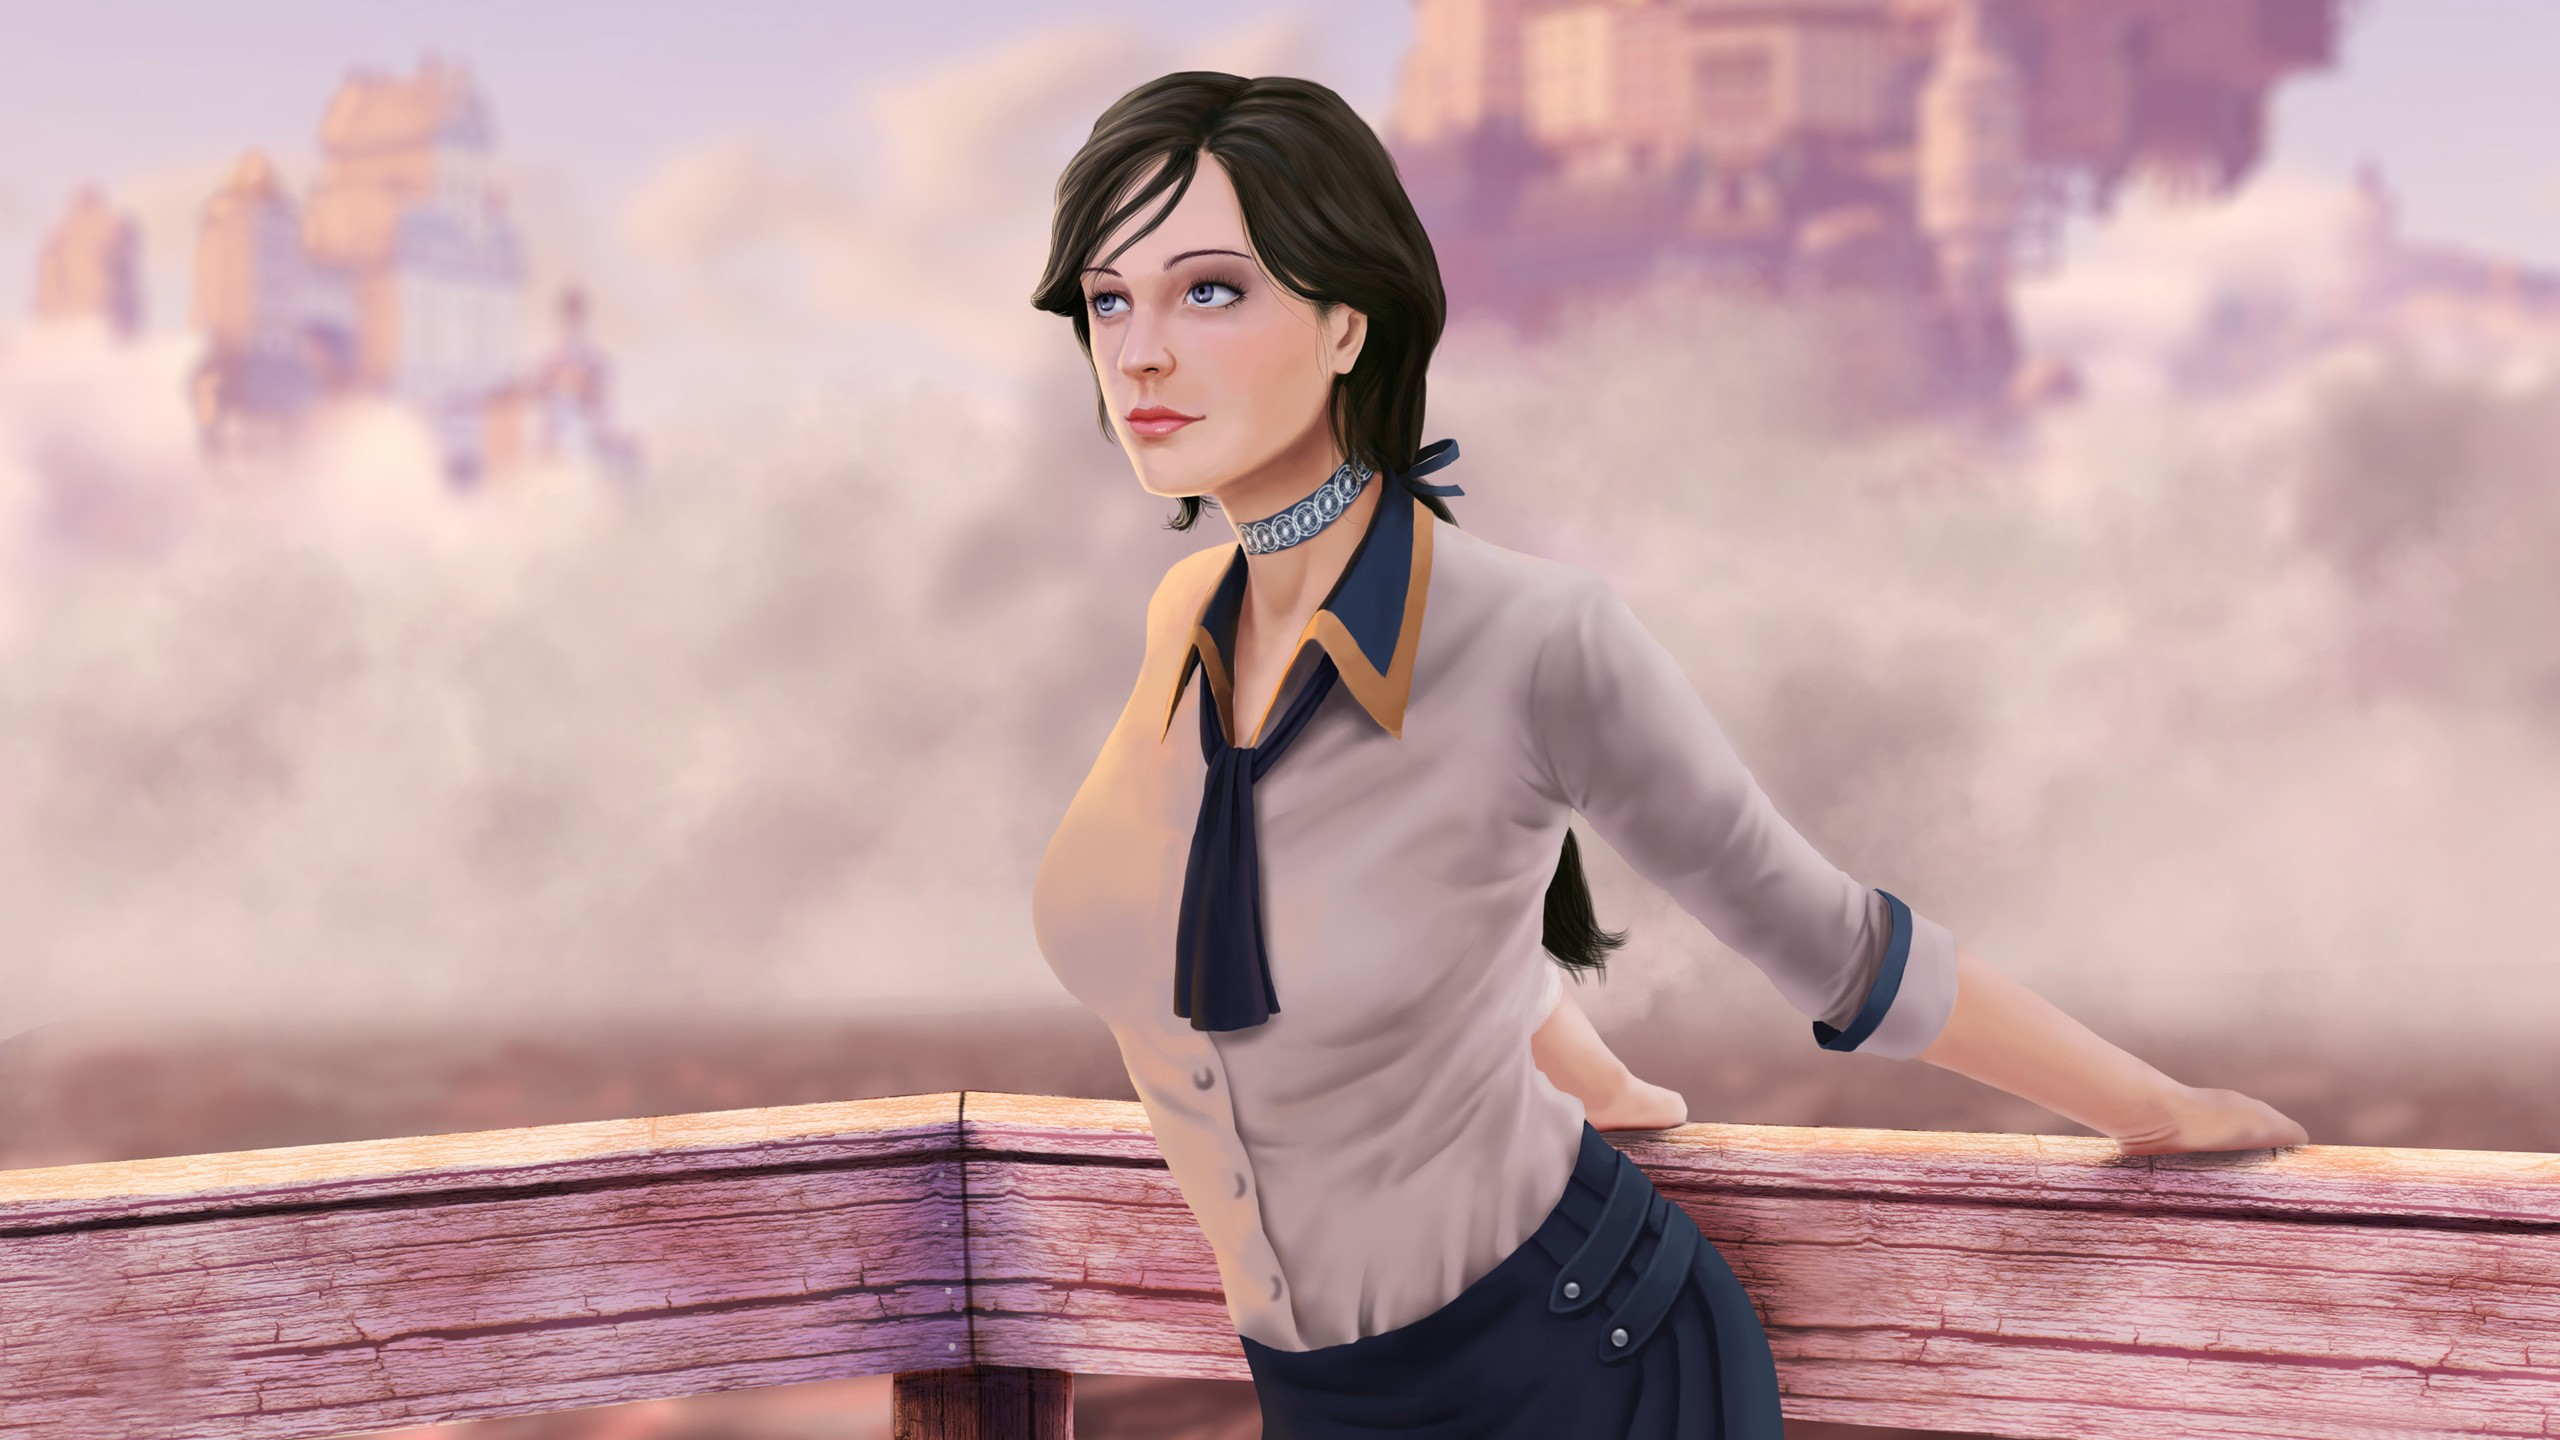 Girl 3 Monitor Wallpaper Elizabeth Bioshock Infinite Wallpapers Hd Wallpapers